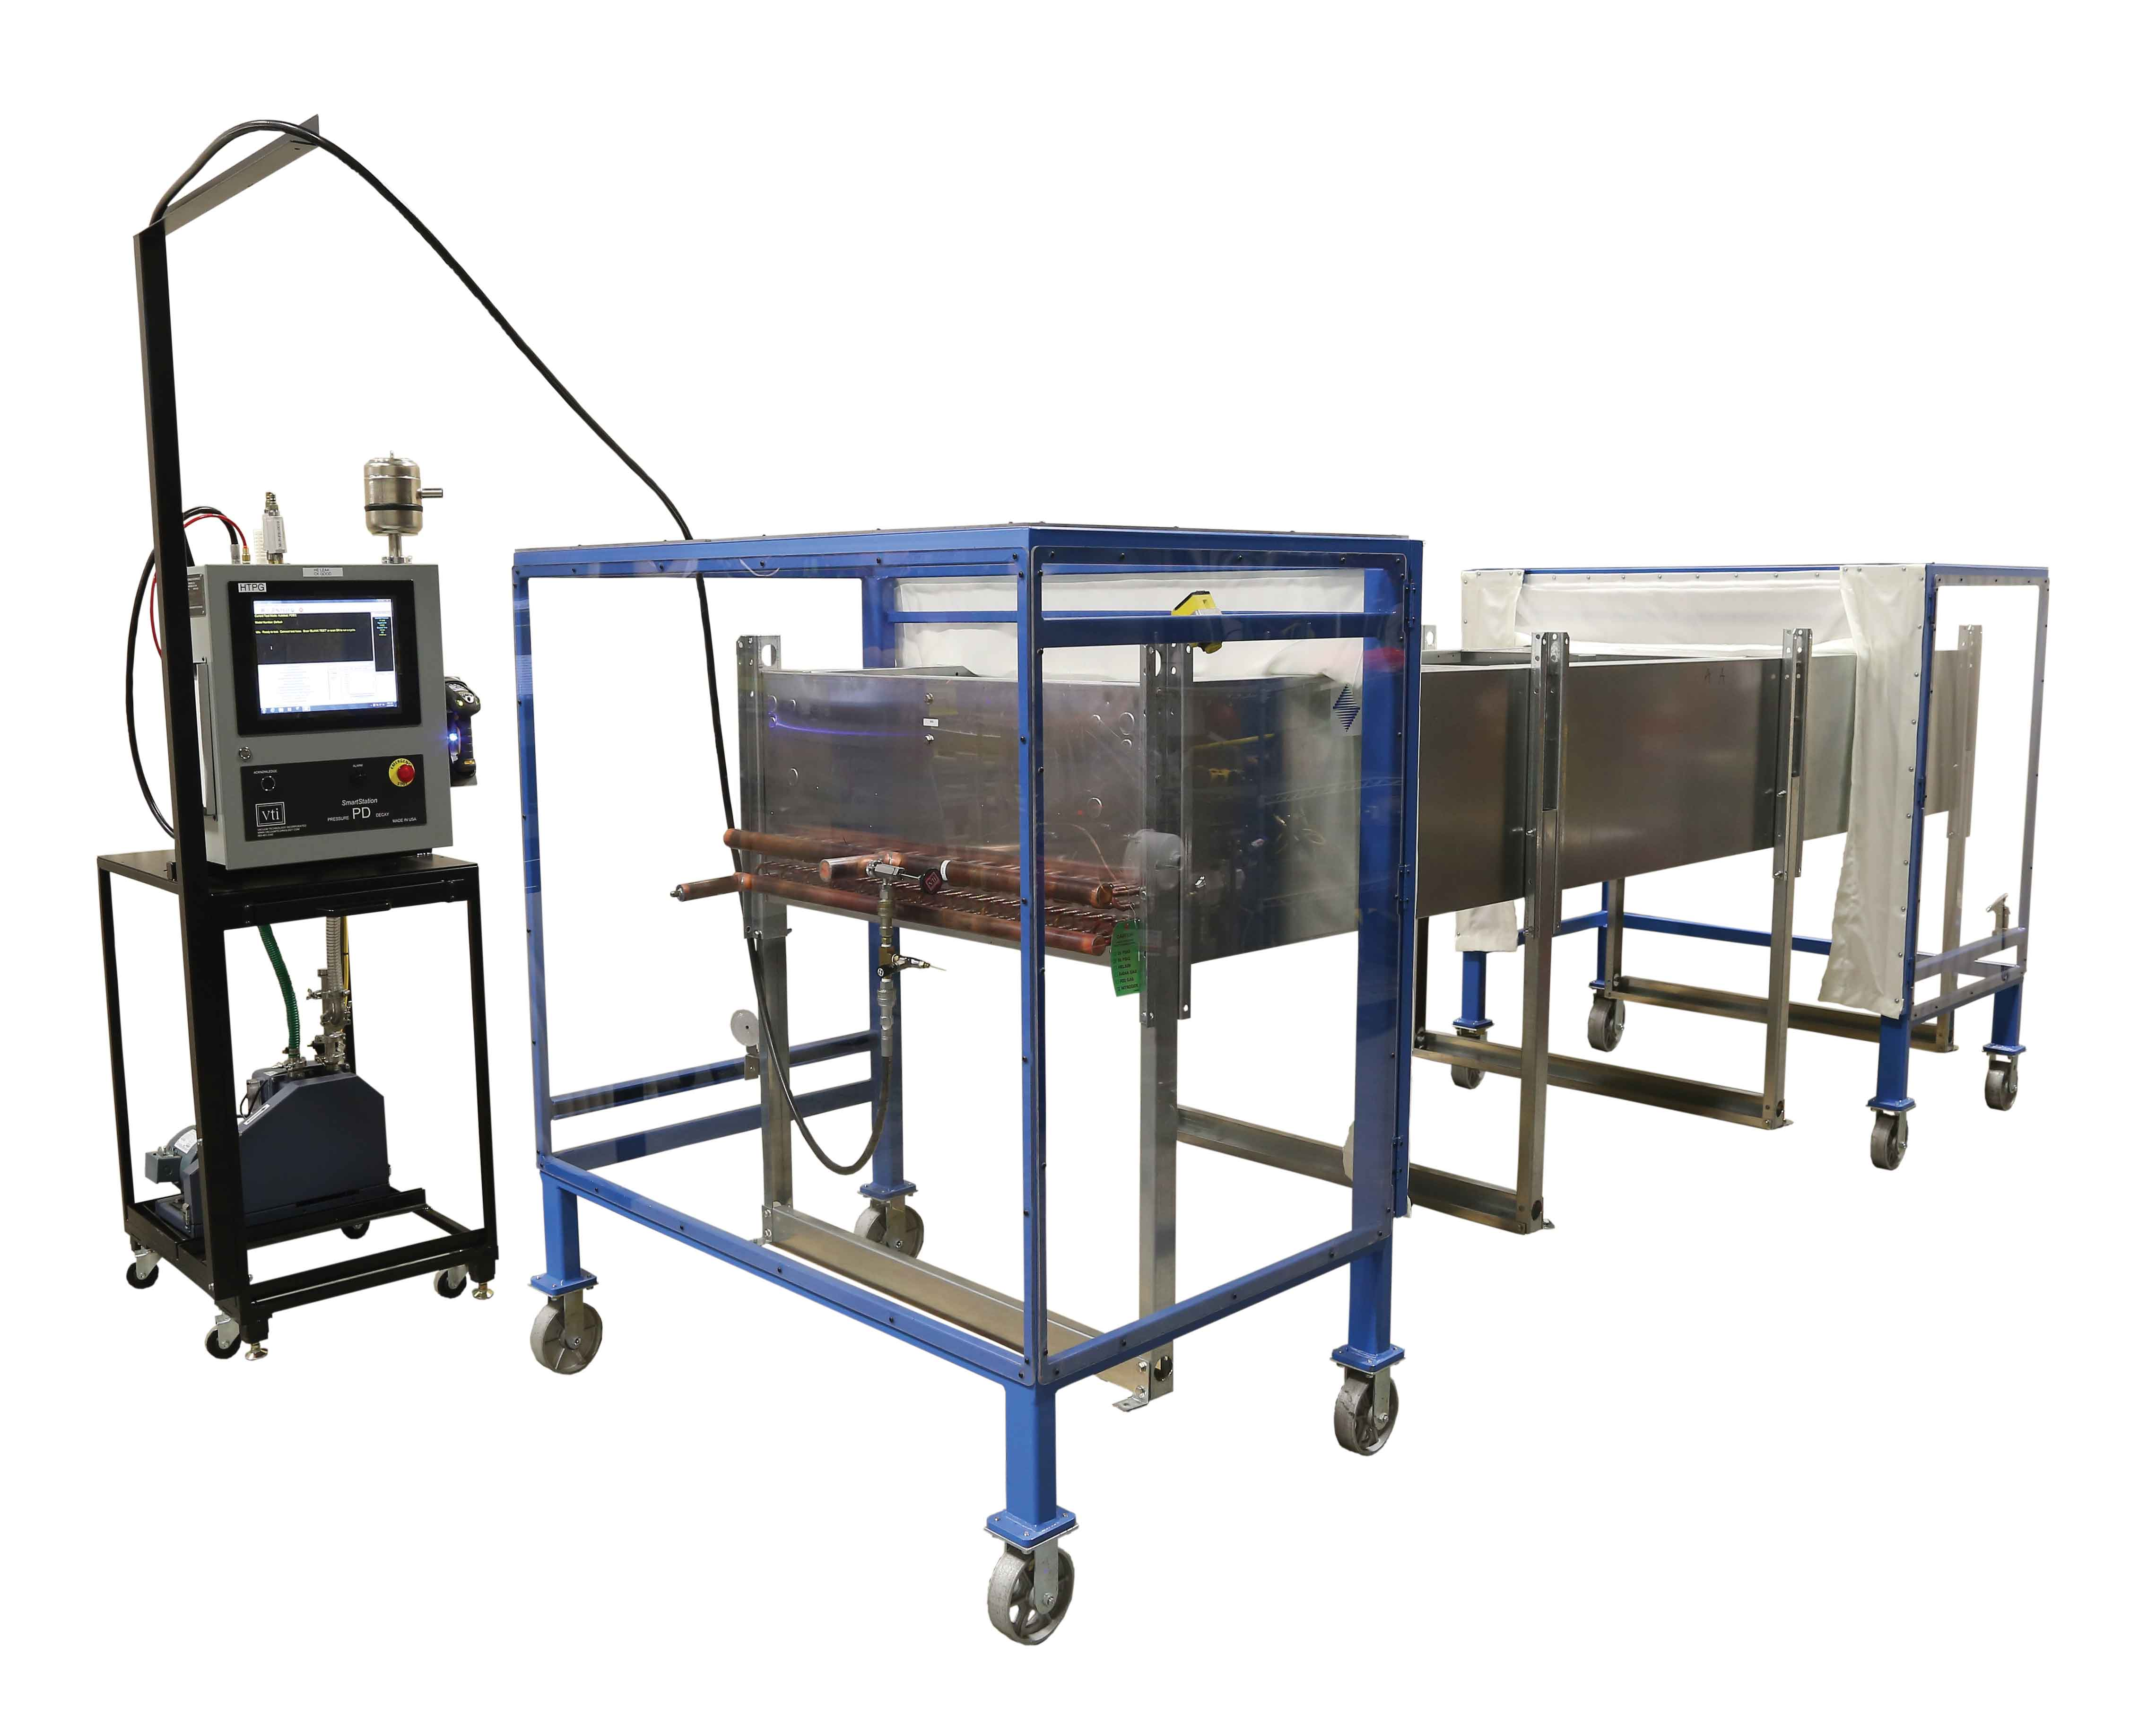 VTI Rollaway Lexan Ballistic Curtain Assembly Pressure Decay Station for Fluid Cooler Manufacturing